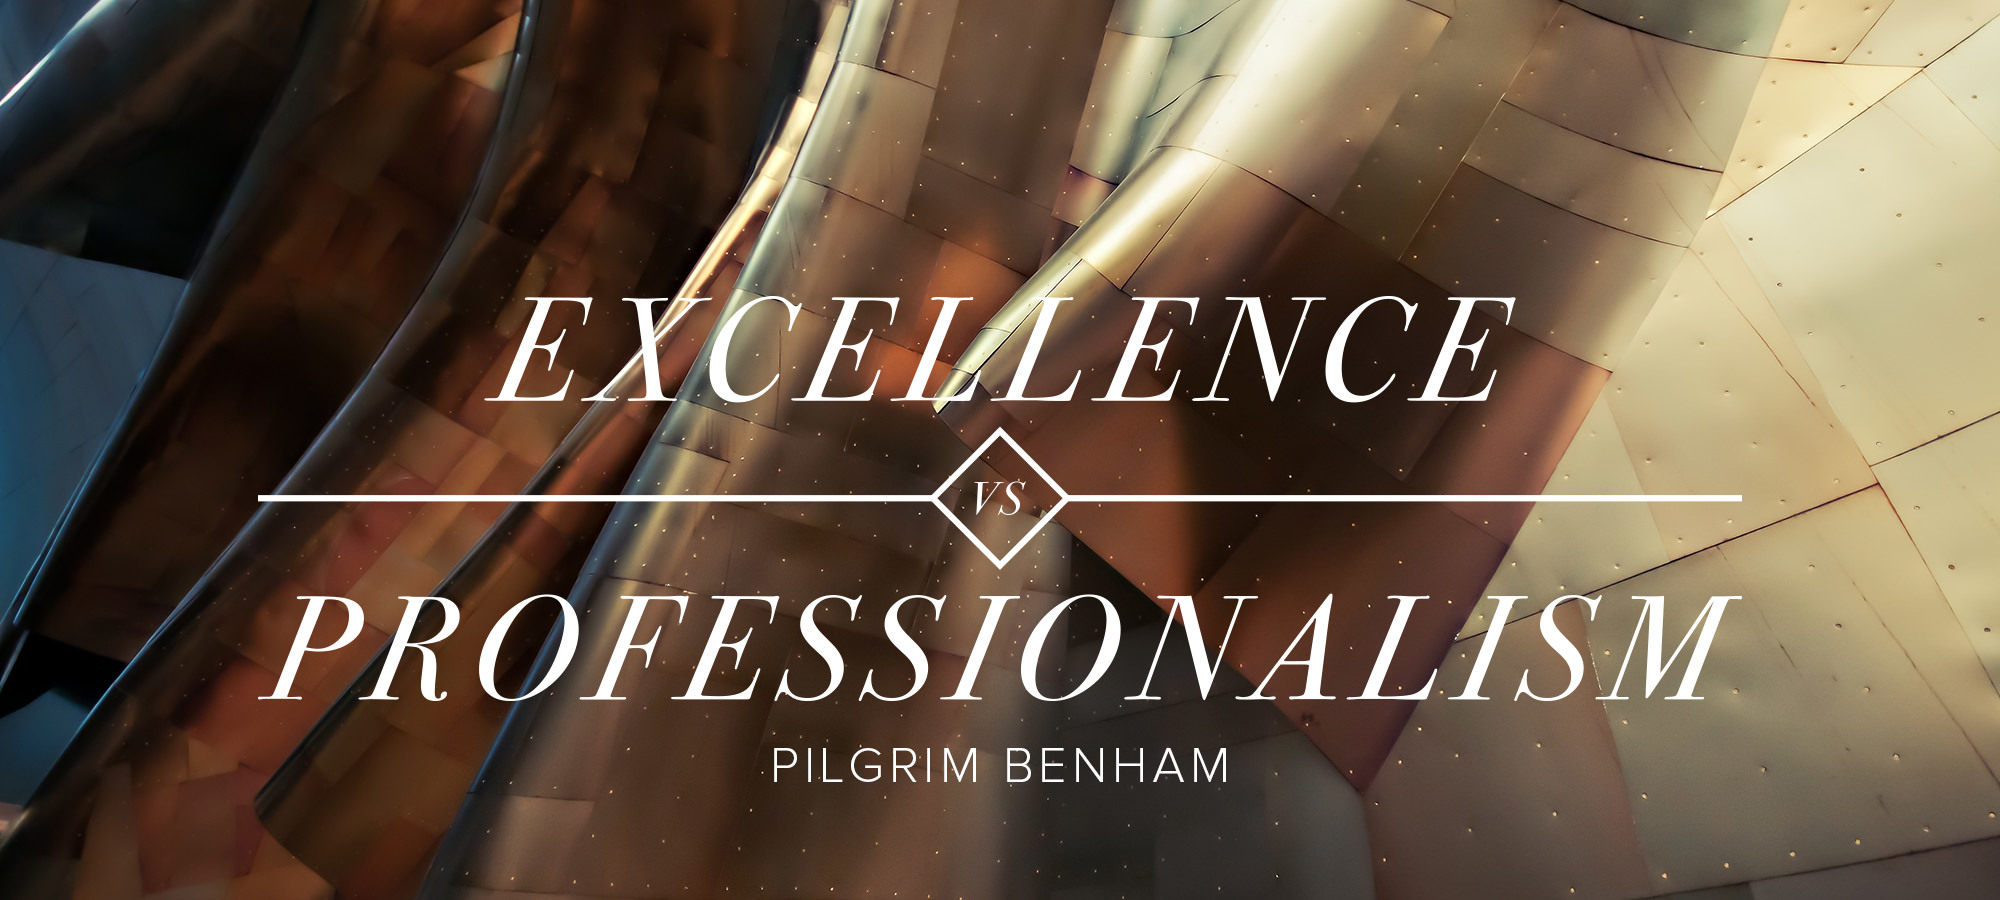 Excellence vs. Professionalism